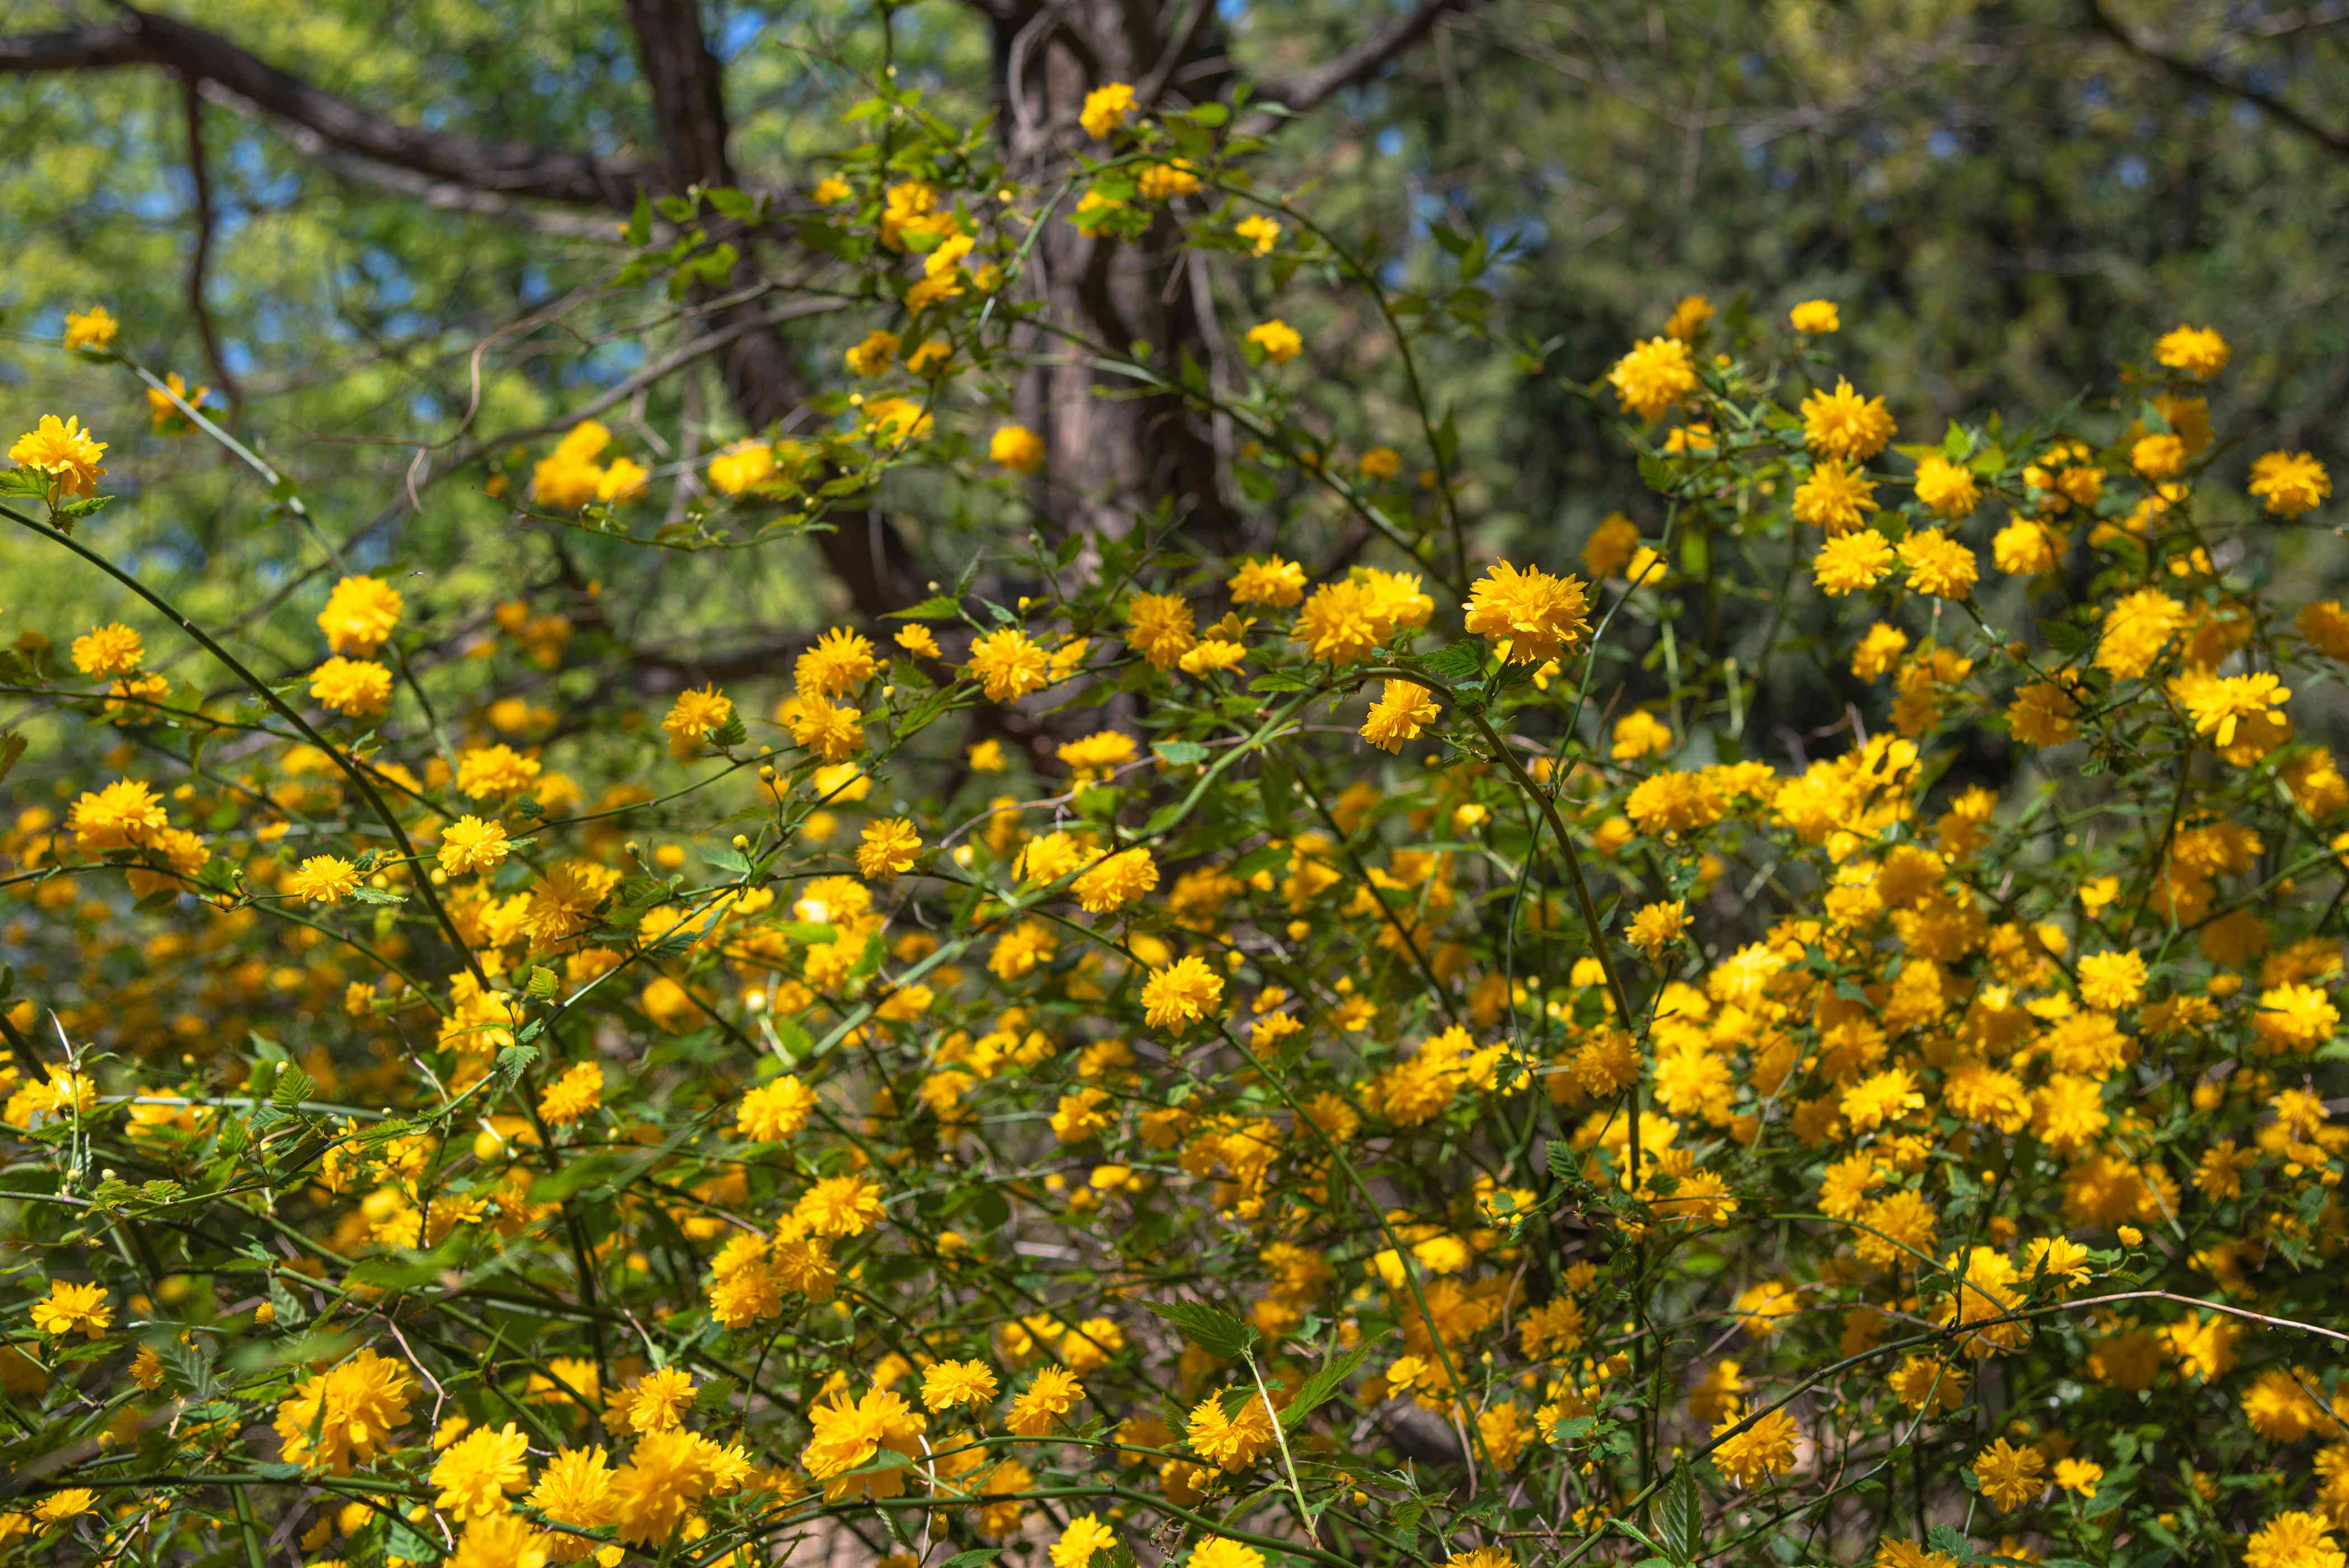 Japanese rose shrub branches with long stems and yellow flowers